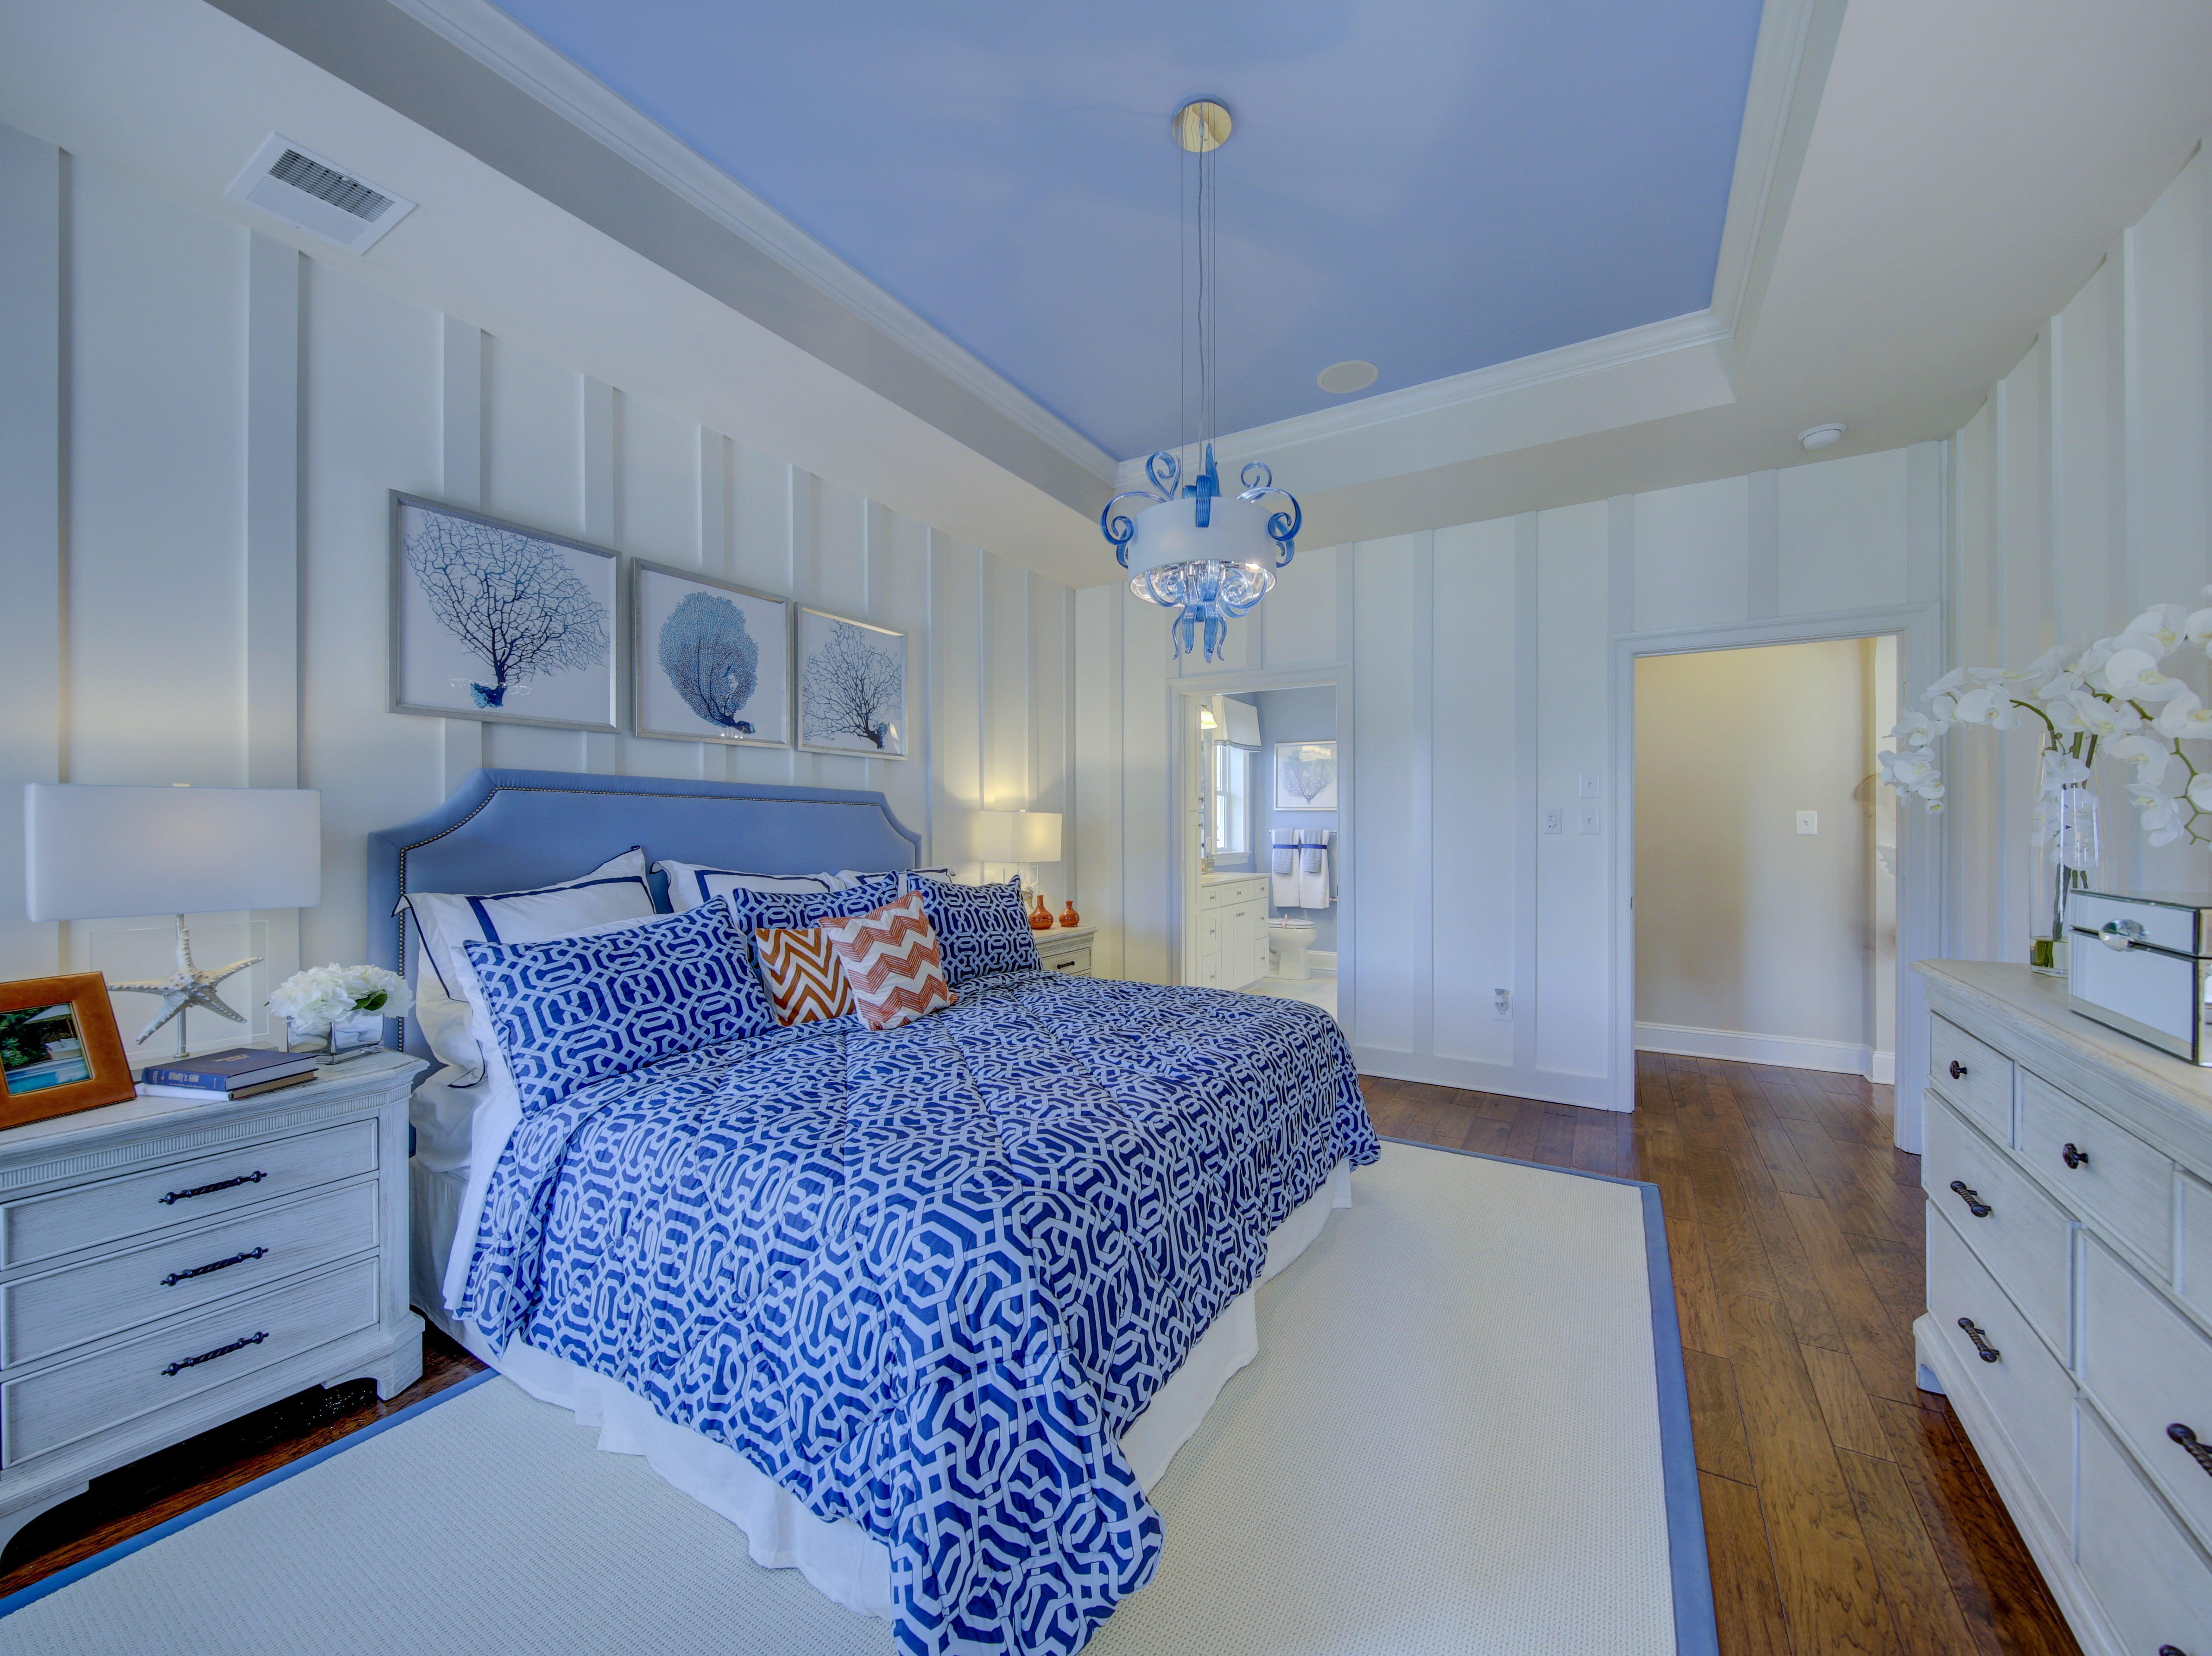 The master bedroom of the model home at The Overlook in Selbyville features a tray ceiling and moulding on the wall.